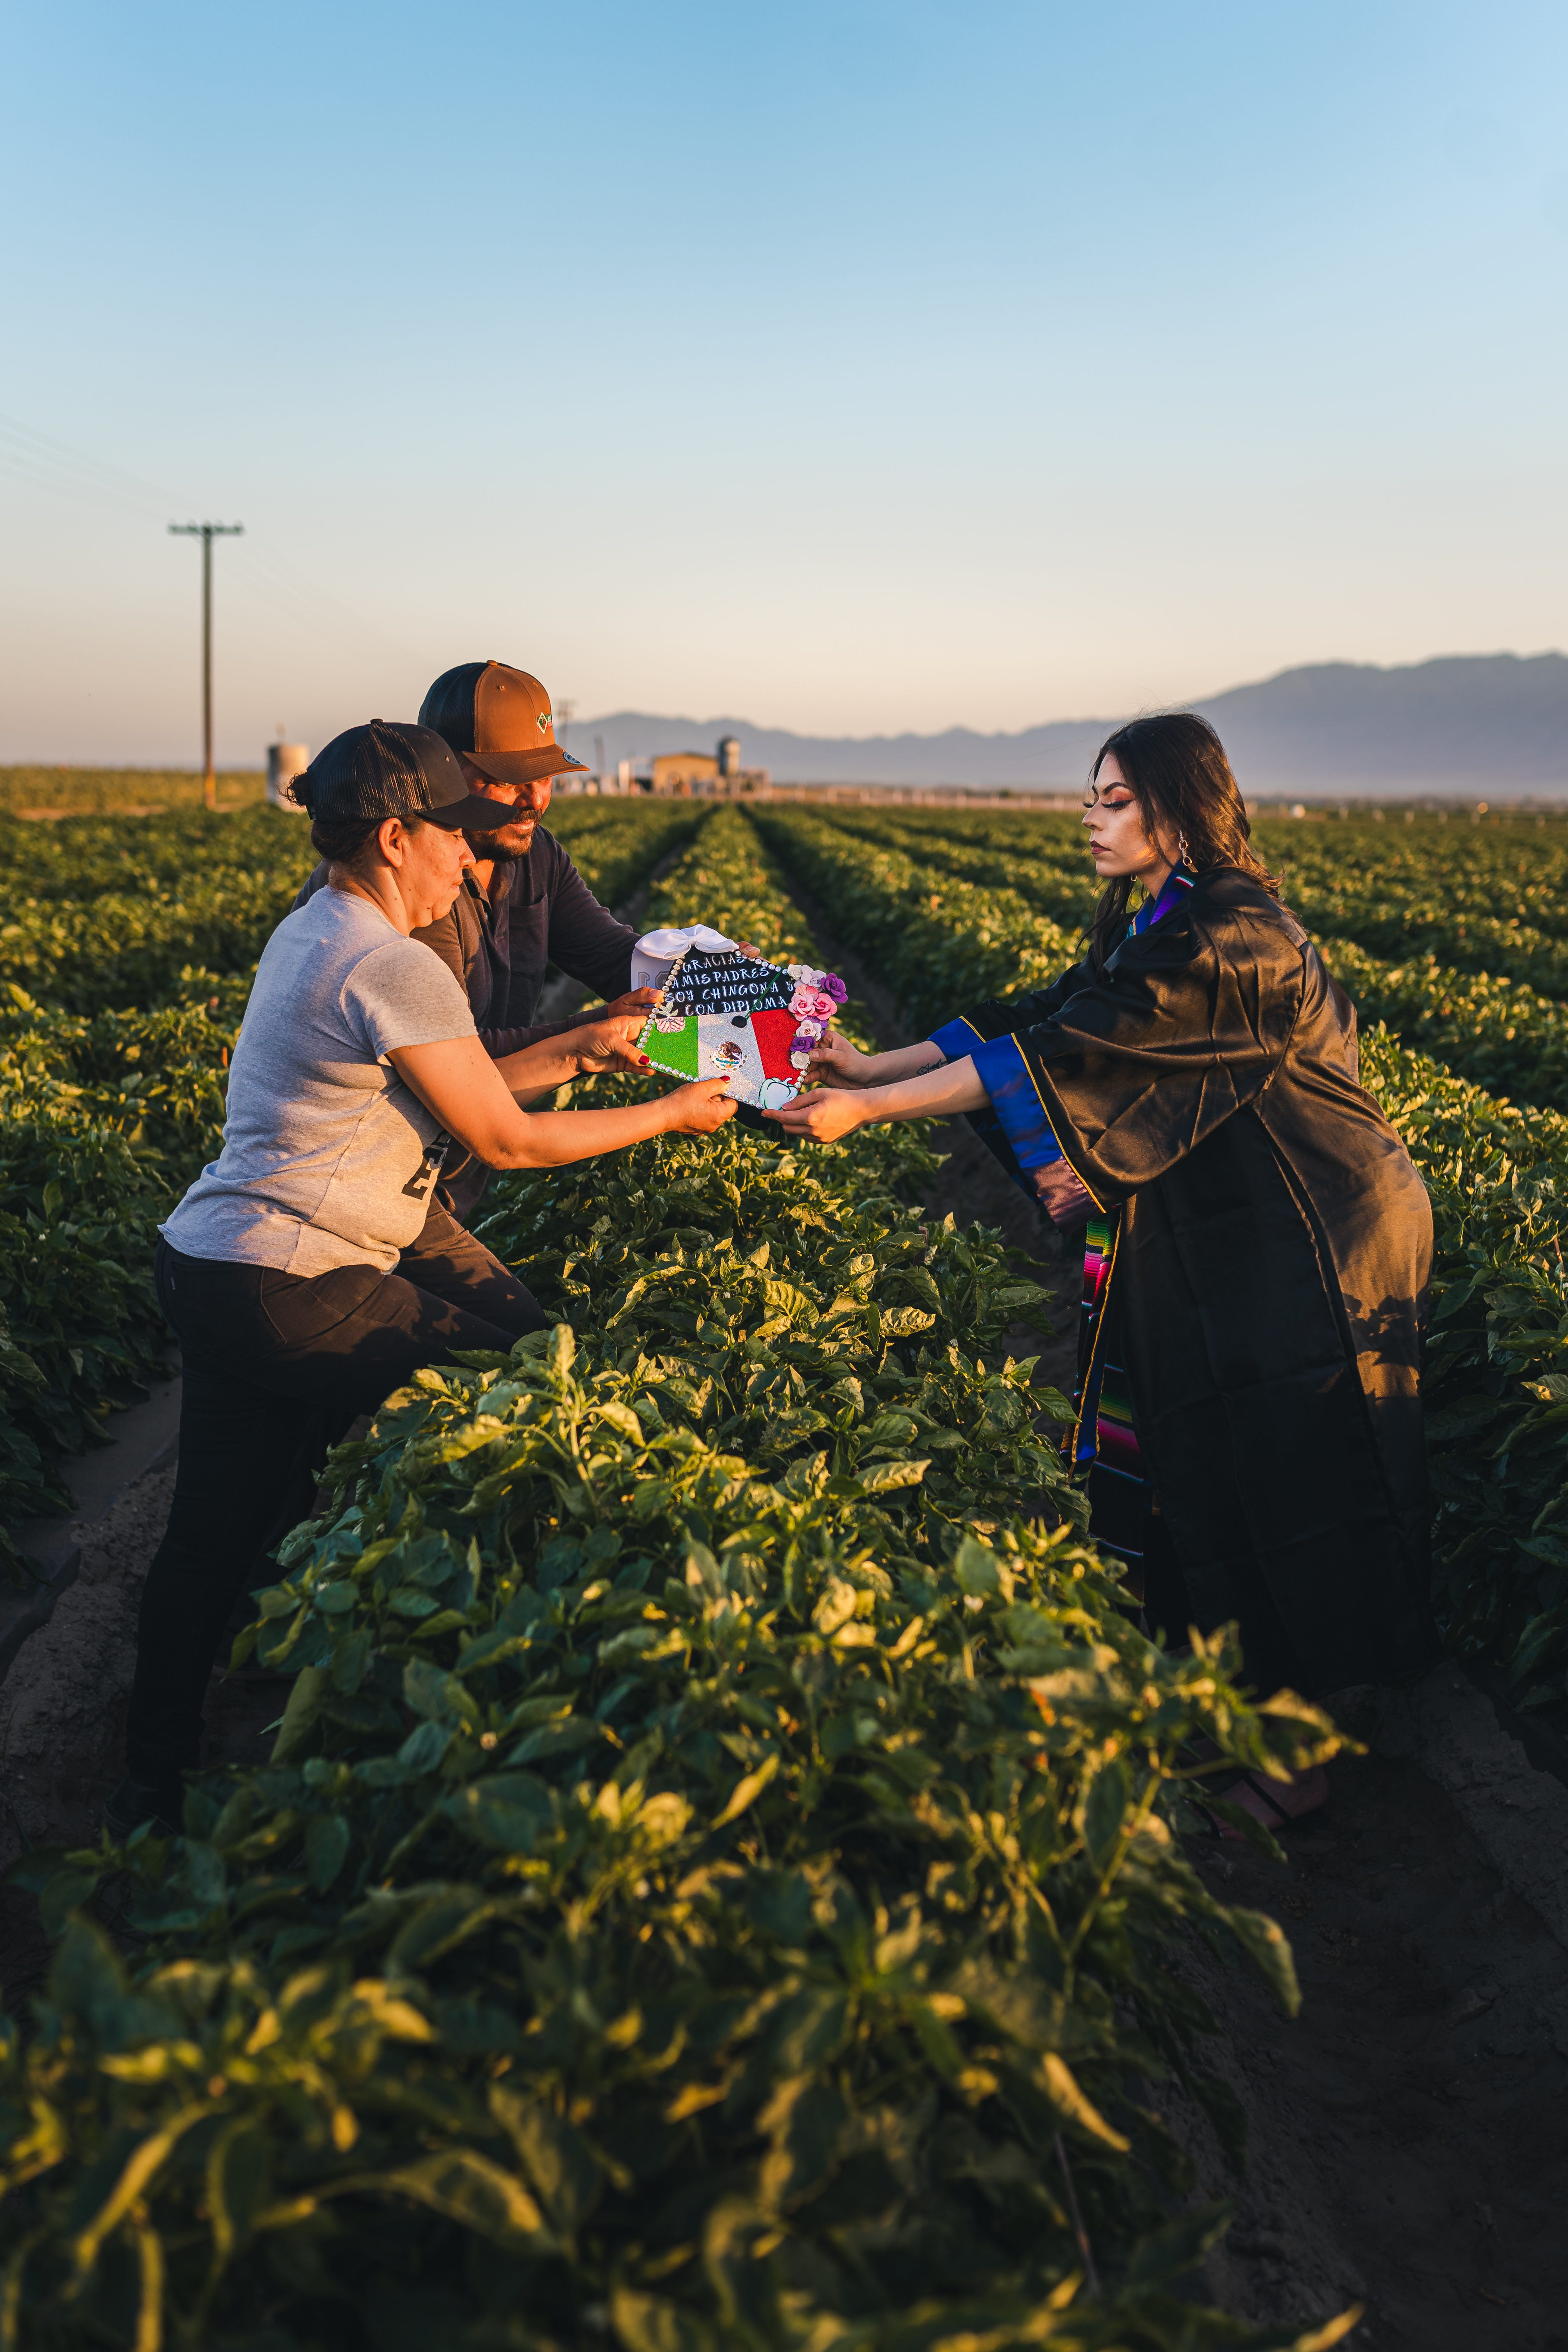 California graduate honors immigrant parents with senior photo shoot in strawberry fields